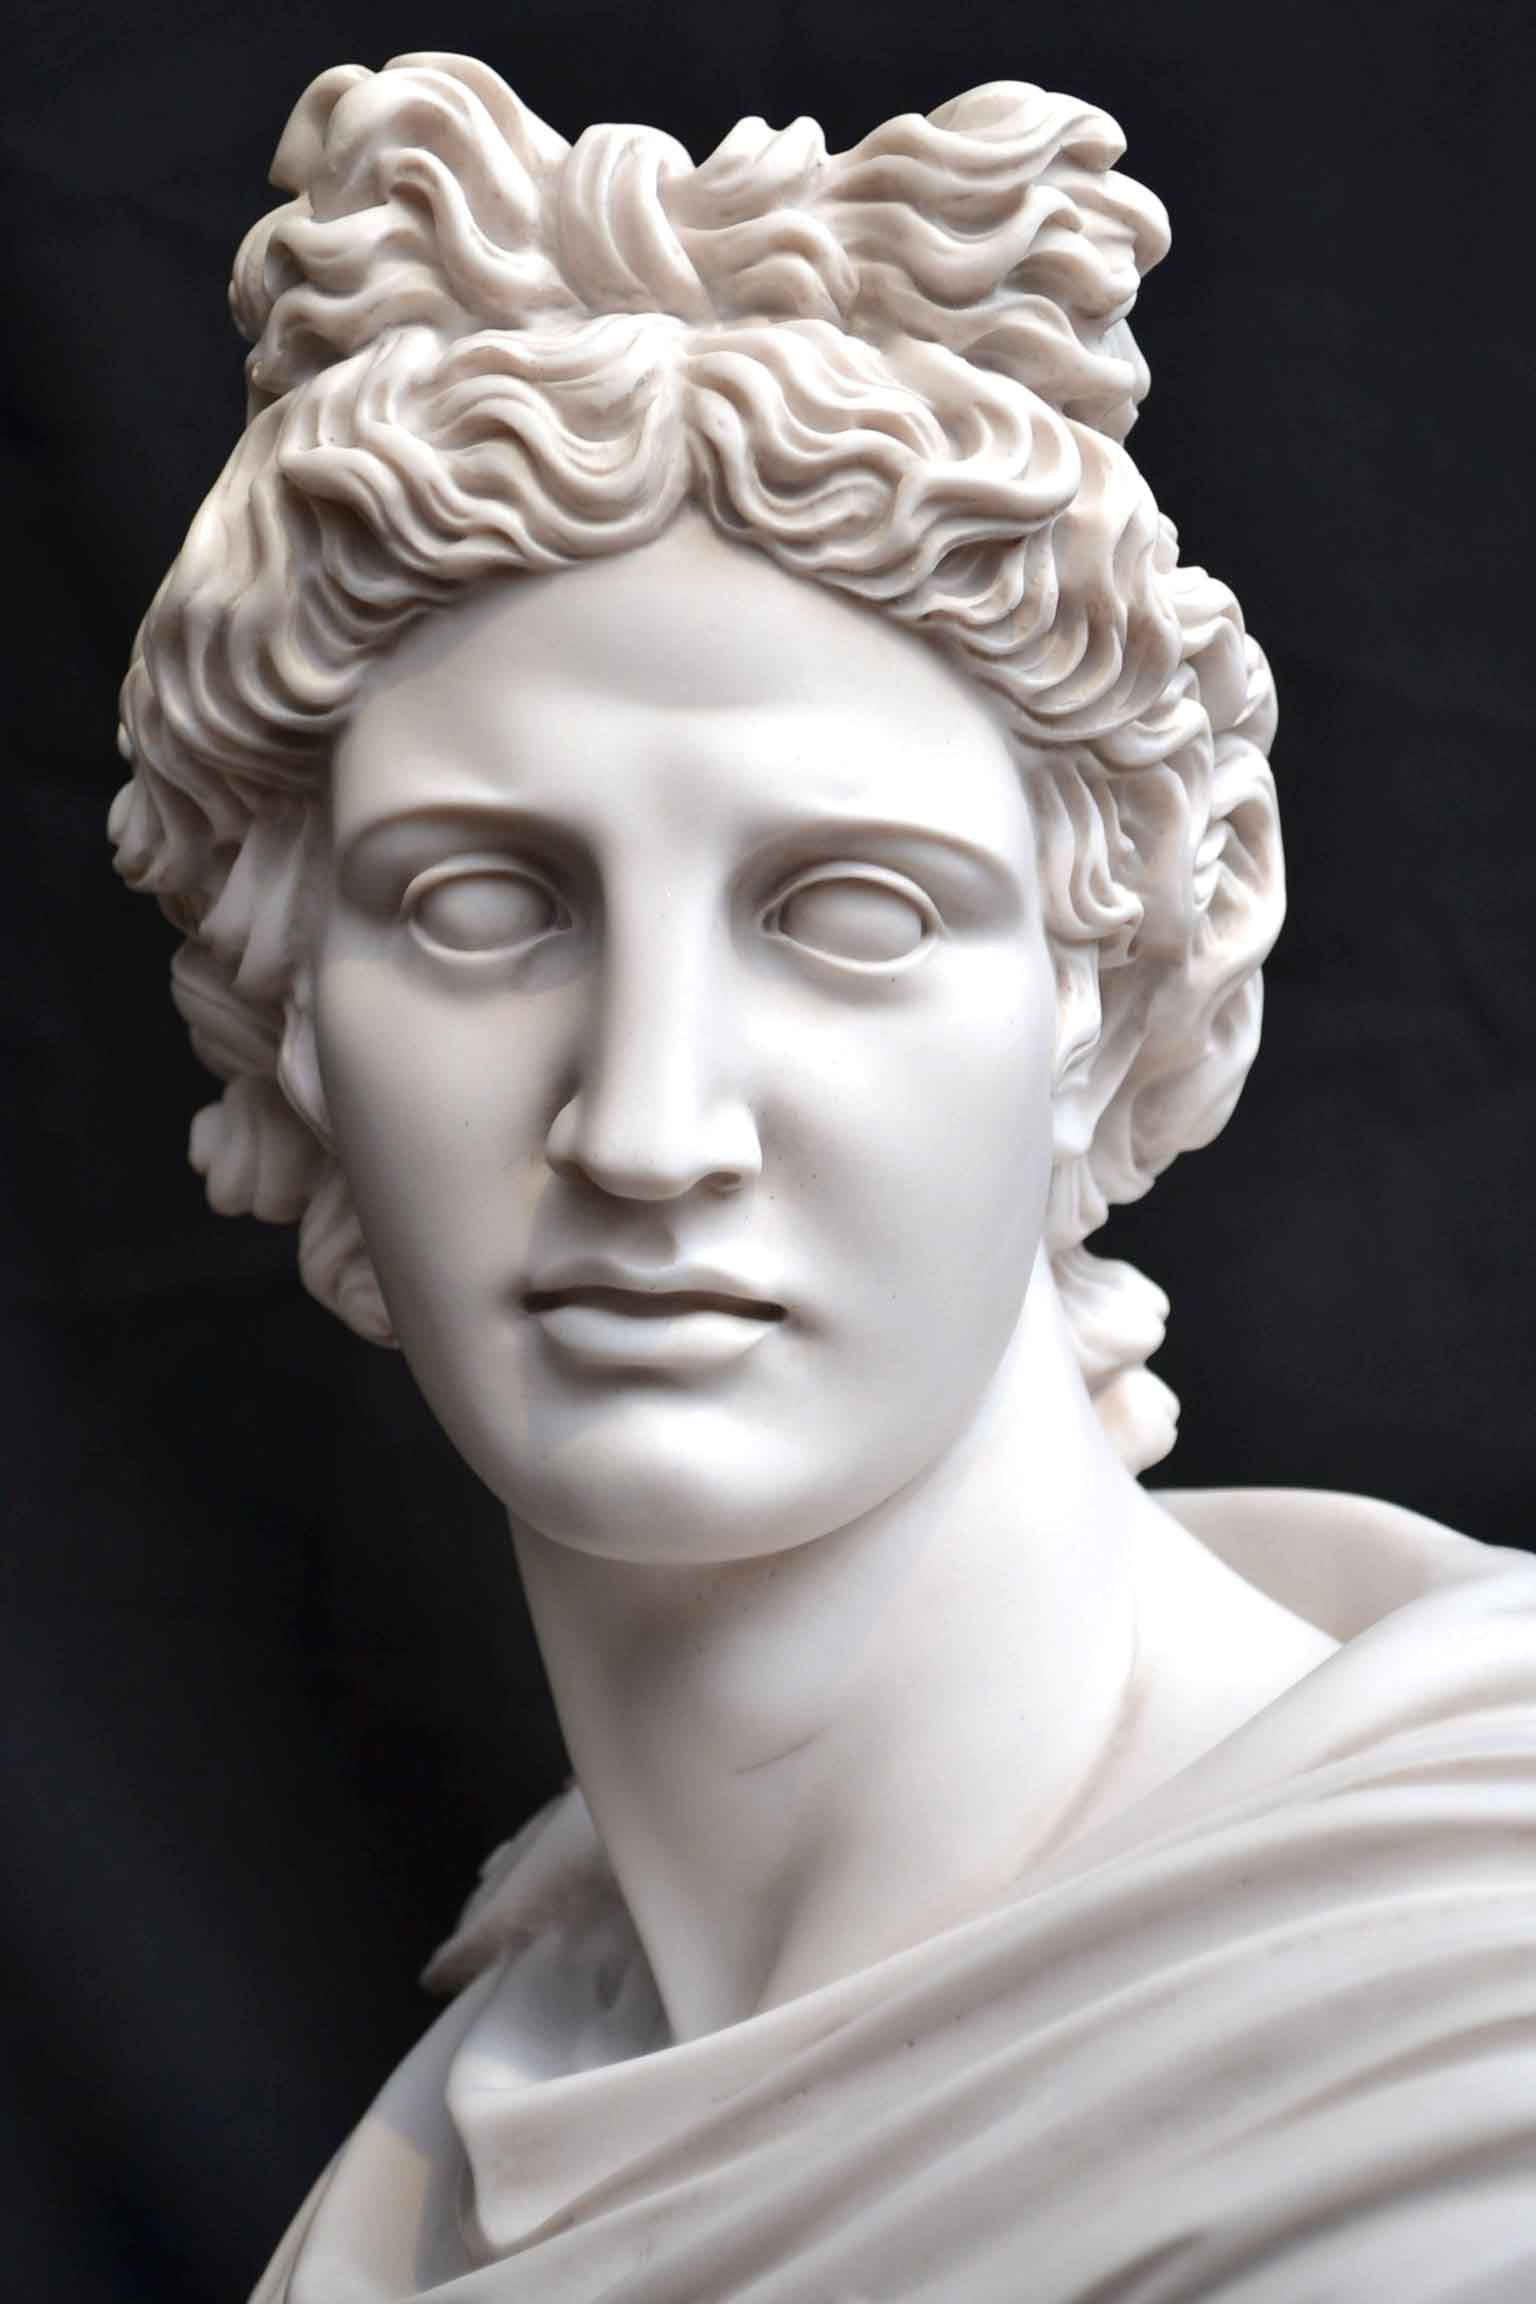 04049-Stunning-Marble-Bust-of-Greek-God-Apollo-11.jpg 1 ...